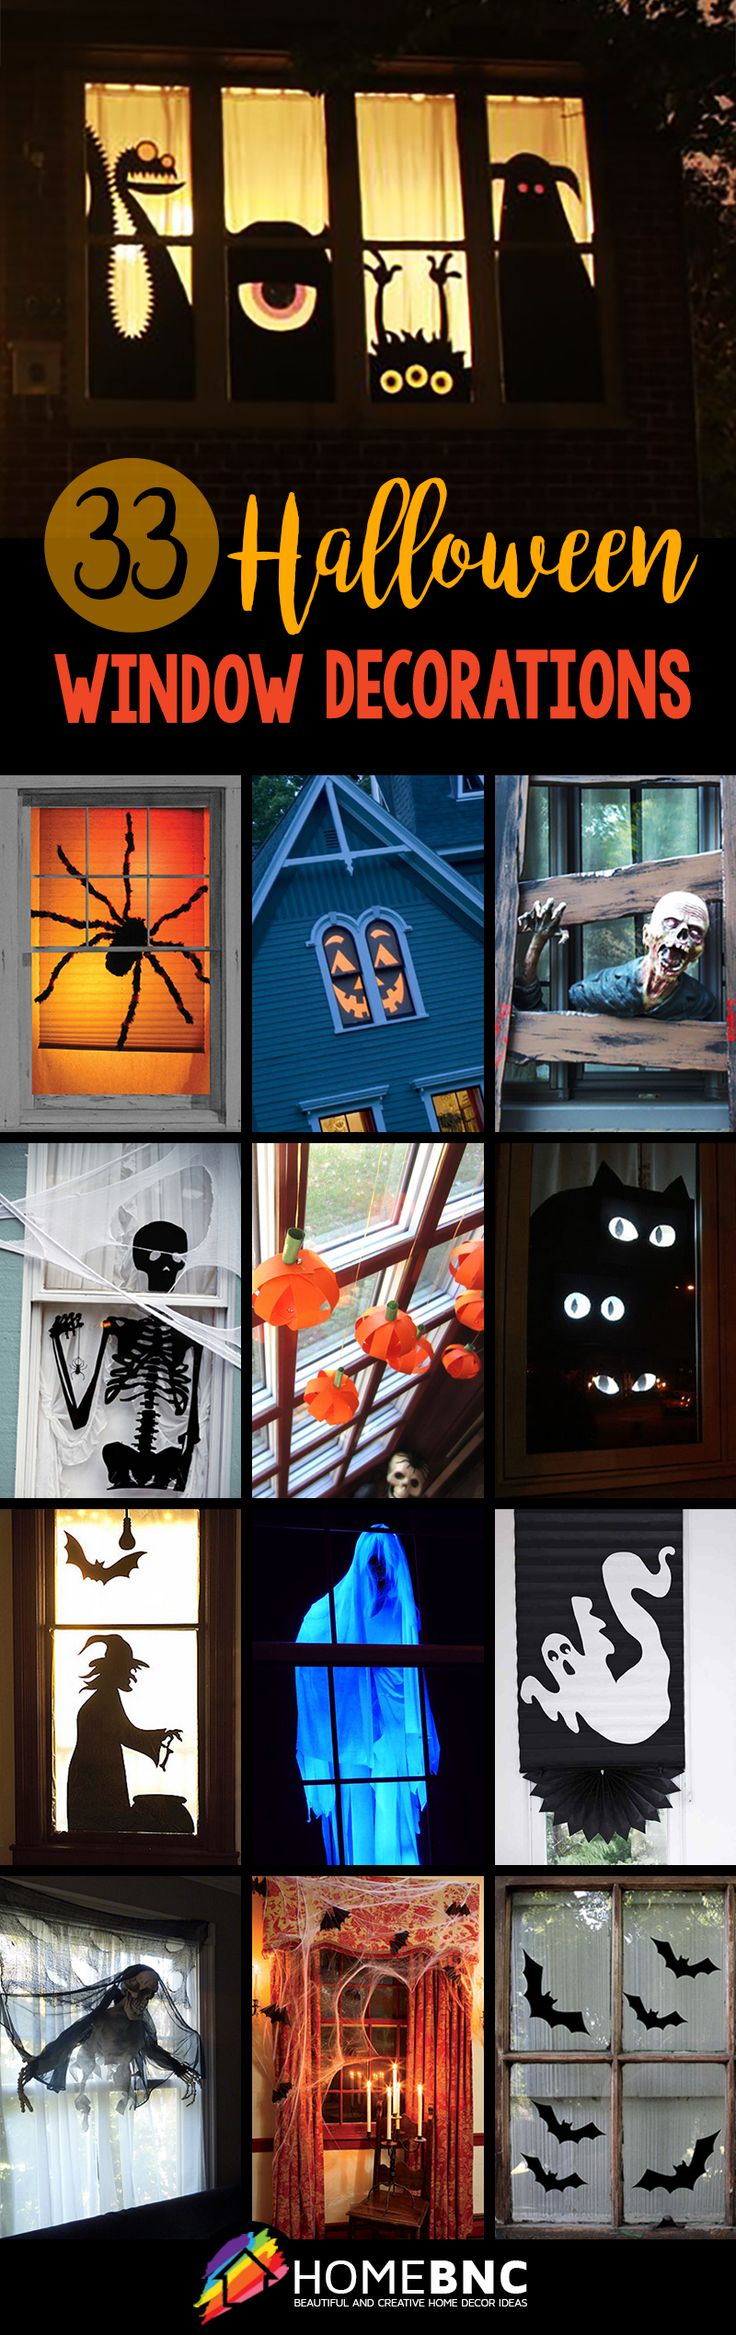 Halloween Window Decorations                                                                                                                                                                                 More